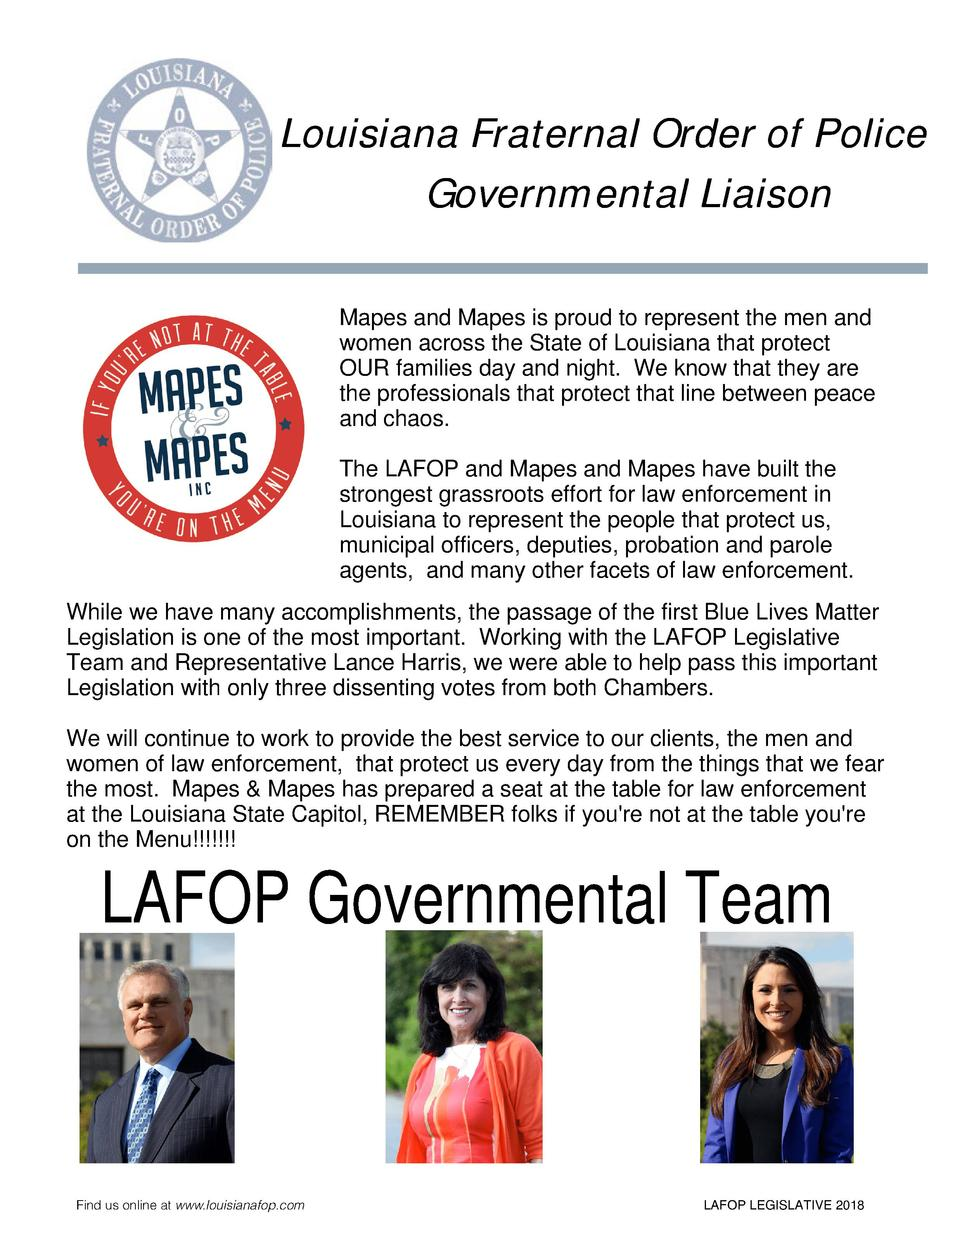 Louisiana Fraternal Order of Police Governmental Liaison Mapes and Mapes is proud to represent the men and women across th...